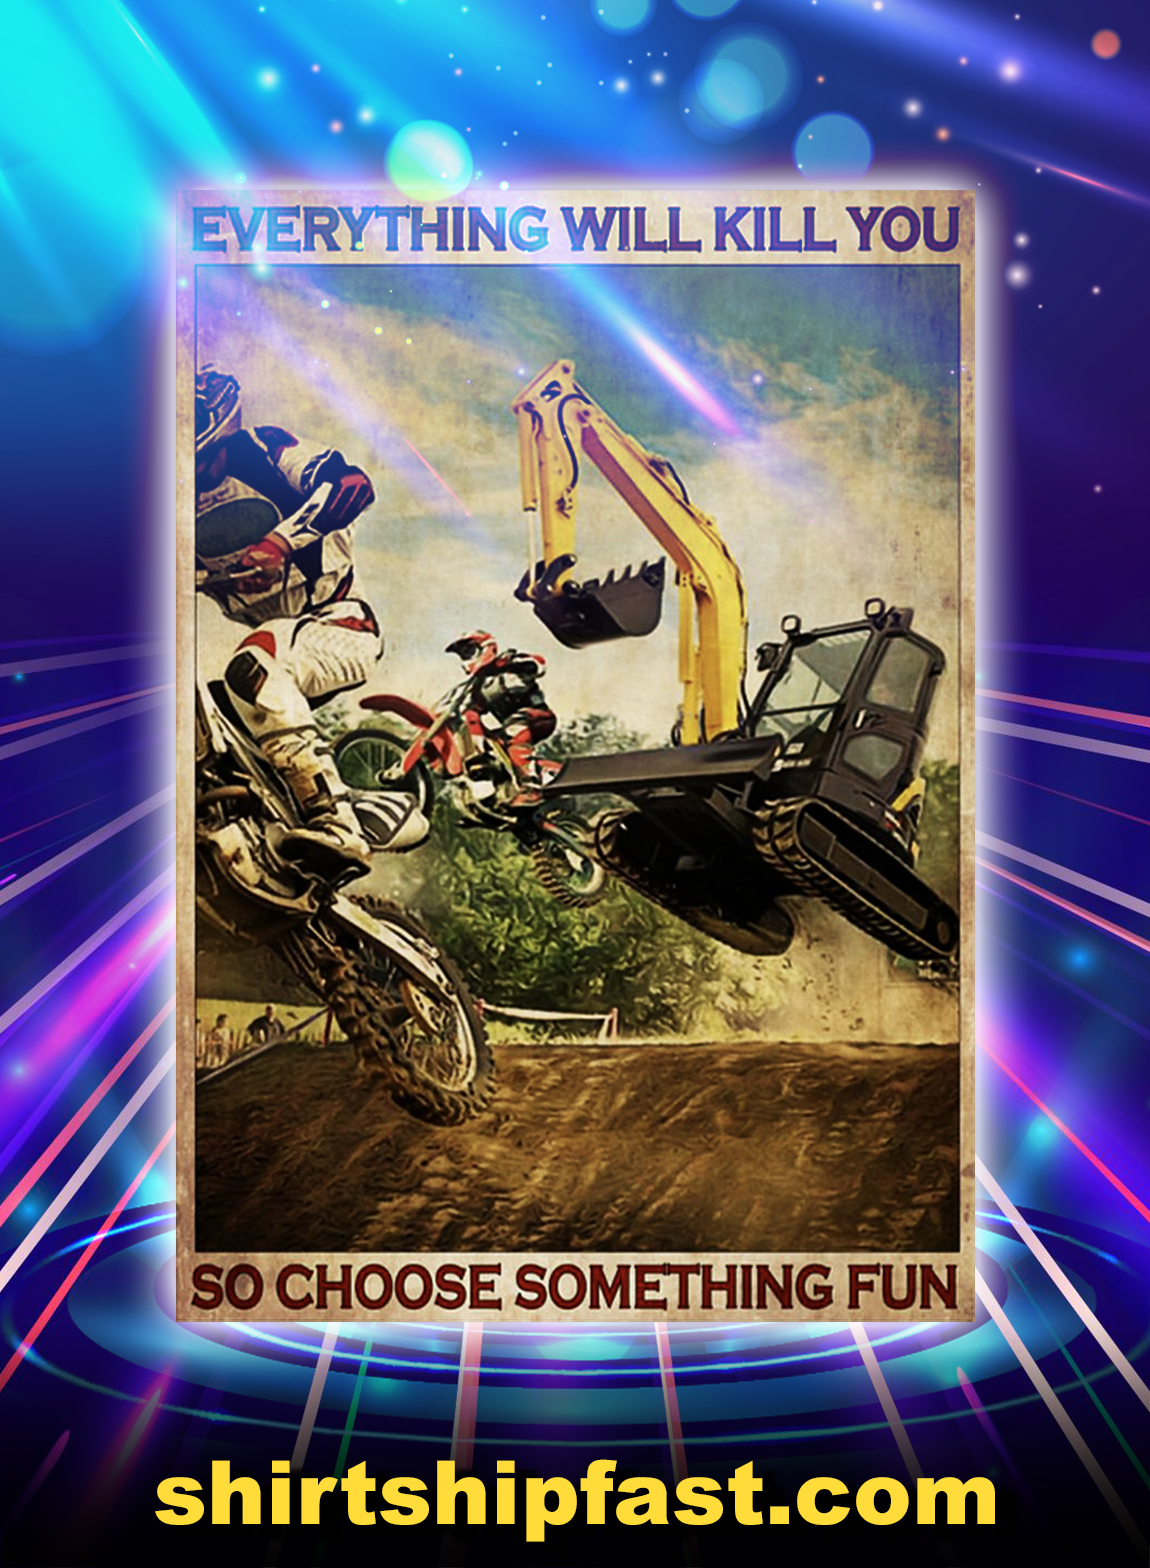 Motorcross and escavator choose something fun poster - A2